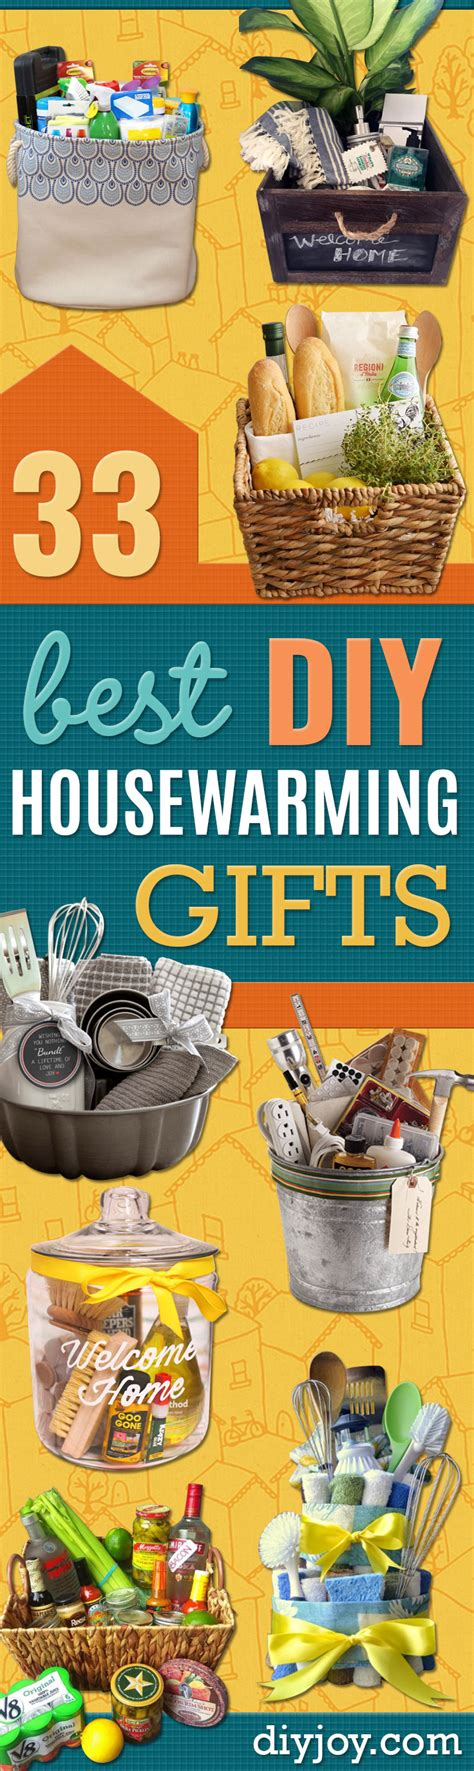 best housewarming gifts 2016 33 best diy housewarming gifts diy joy